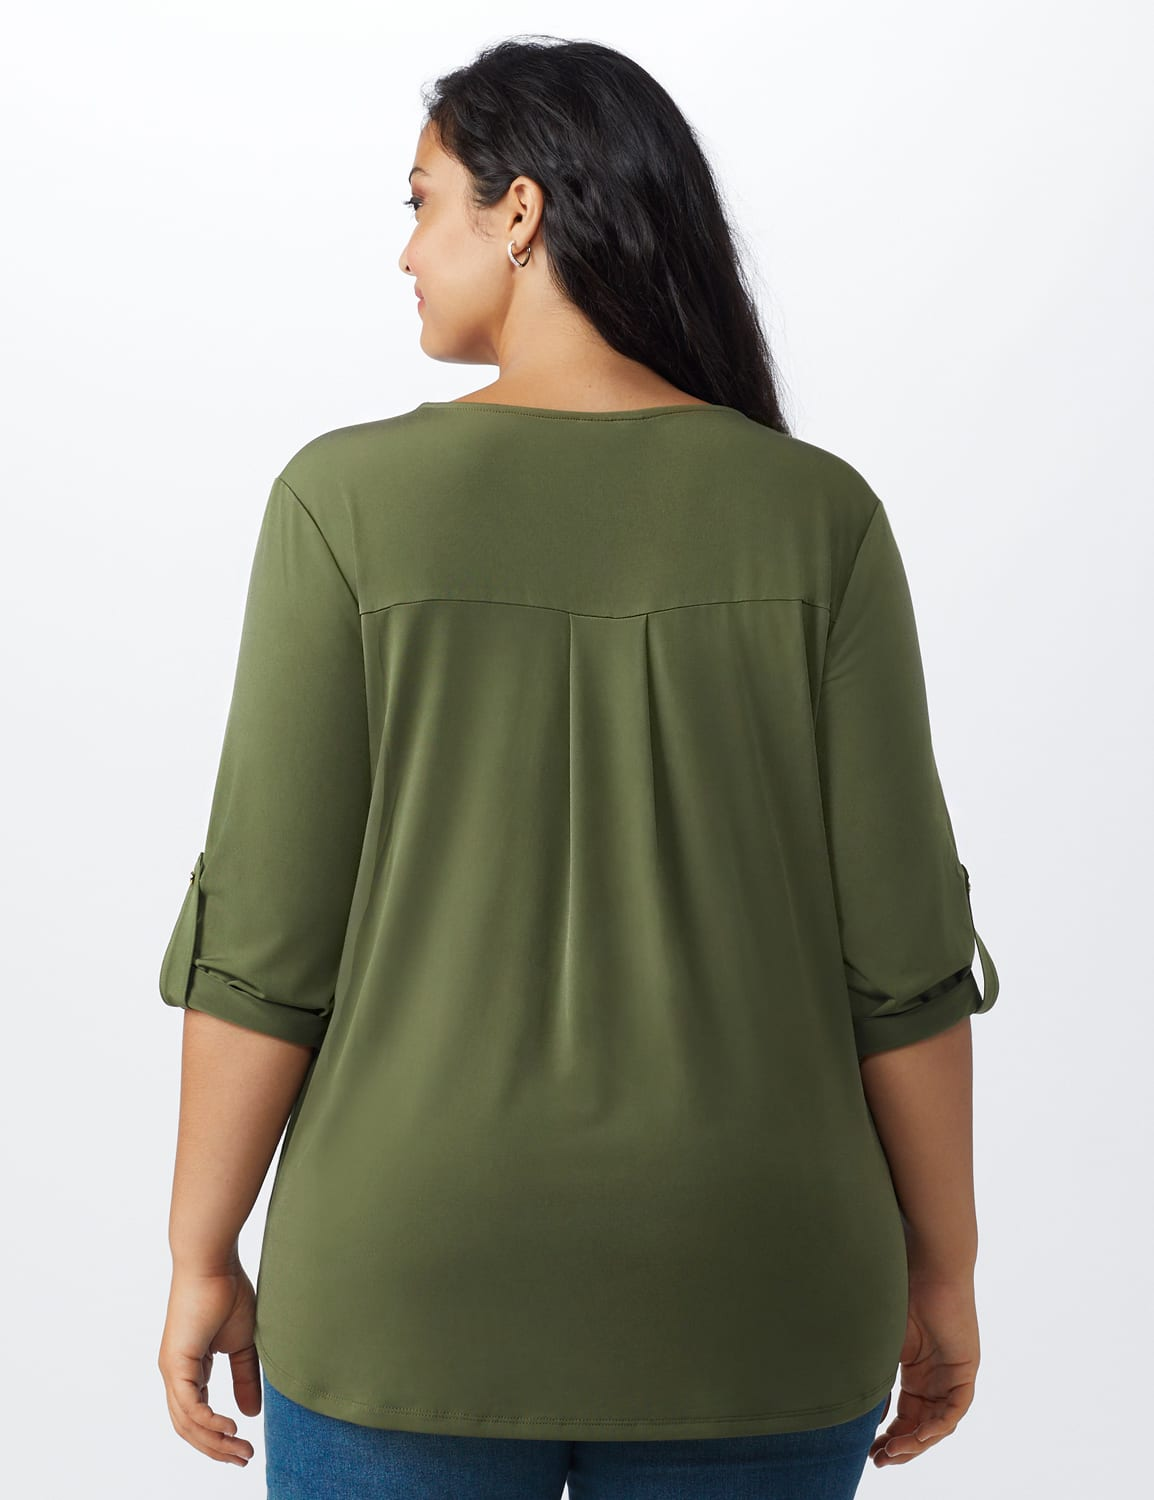 Roz & Ali Zip Front Knit Top - Plus - Olive - Back